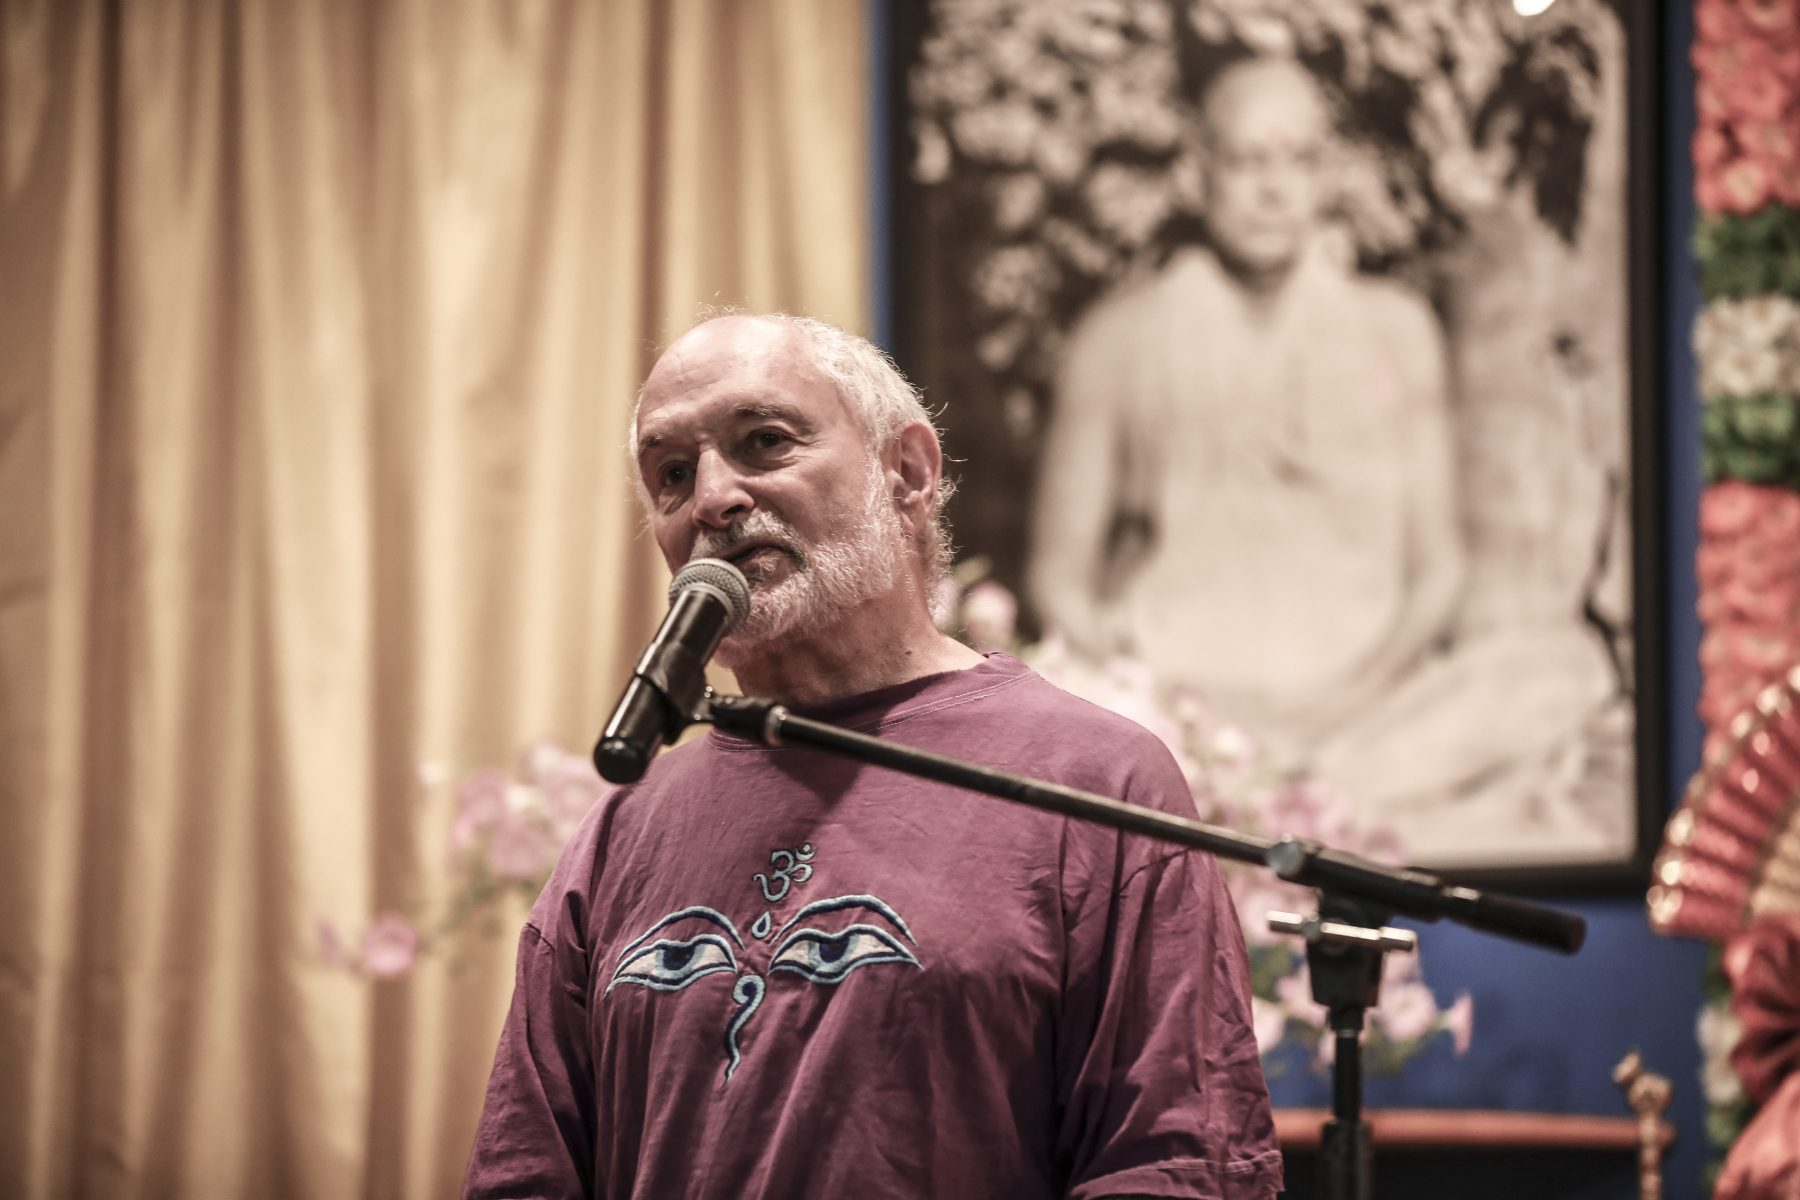 Stories of the Flying Swami at the Sivananda Yoga Ranch